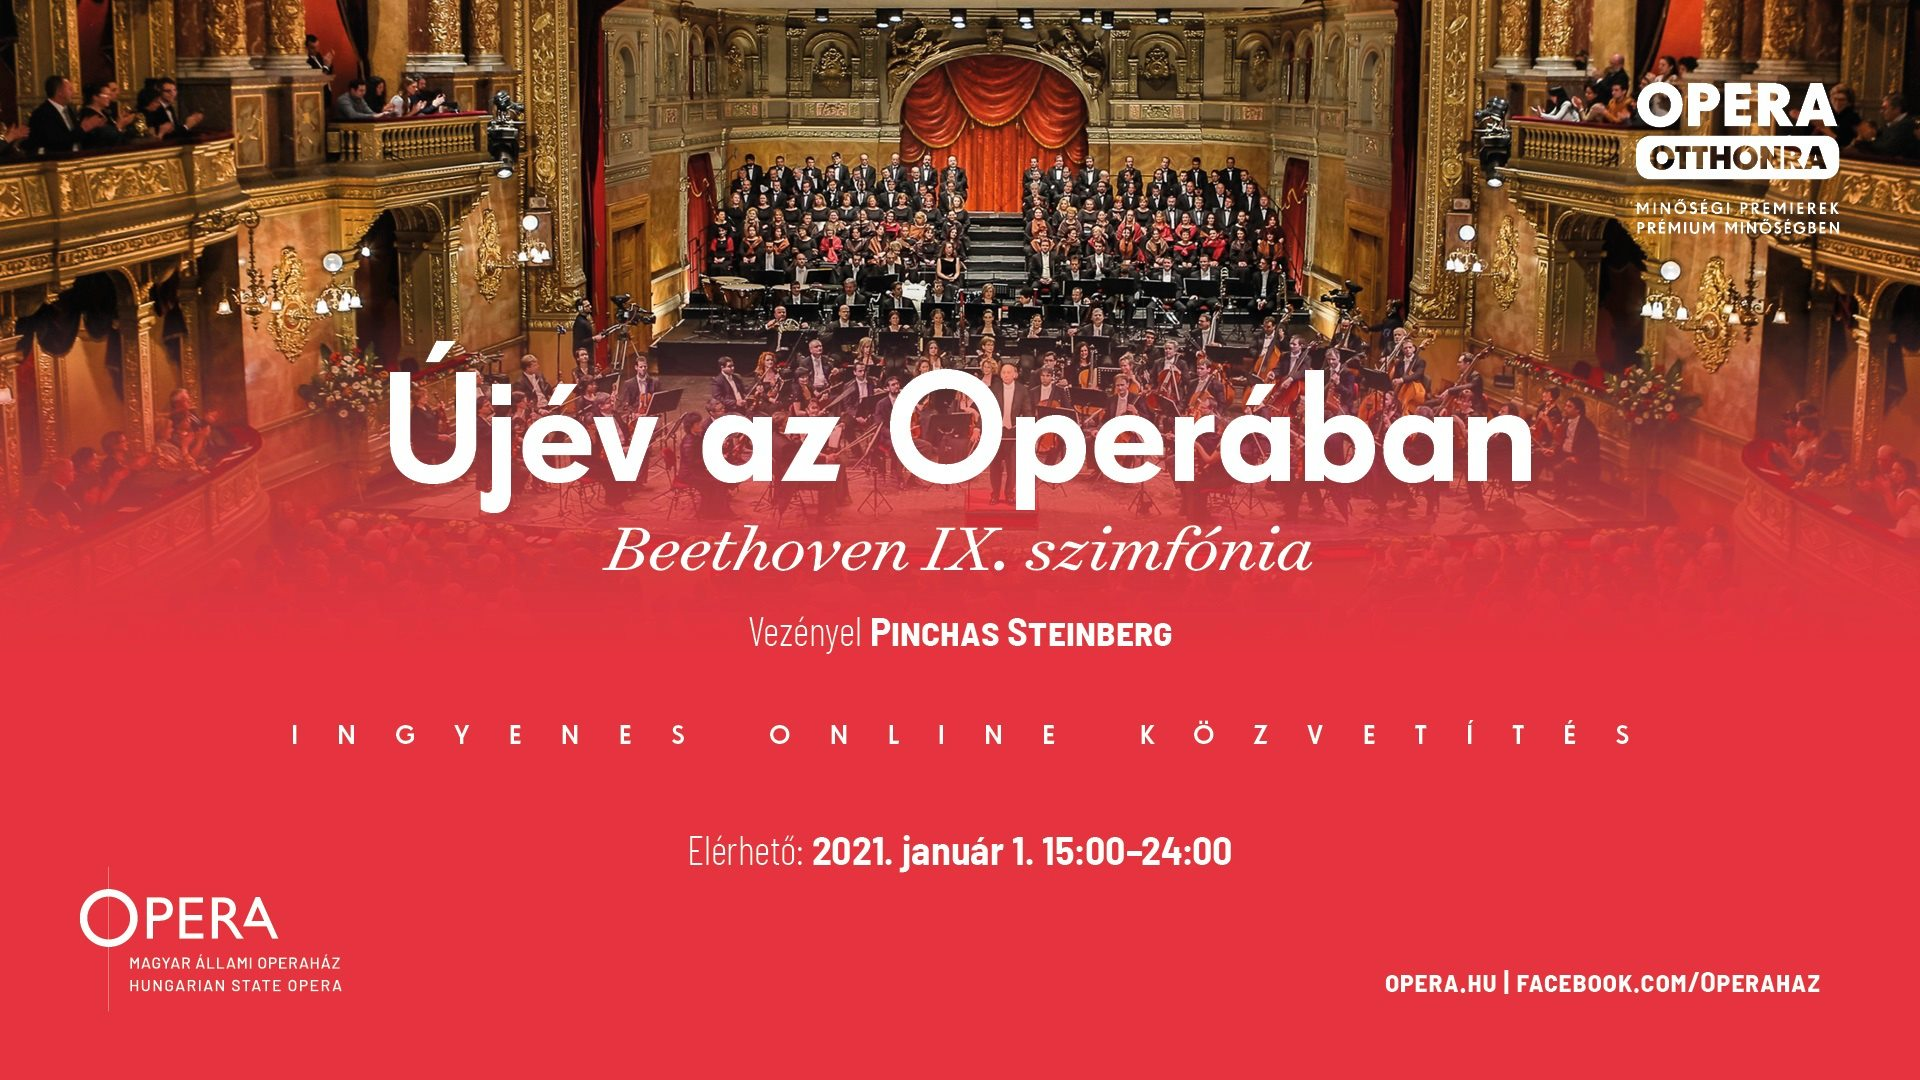 New Year's Concert Live Streaming From Opera